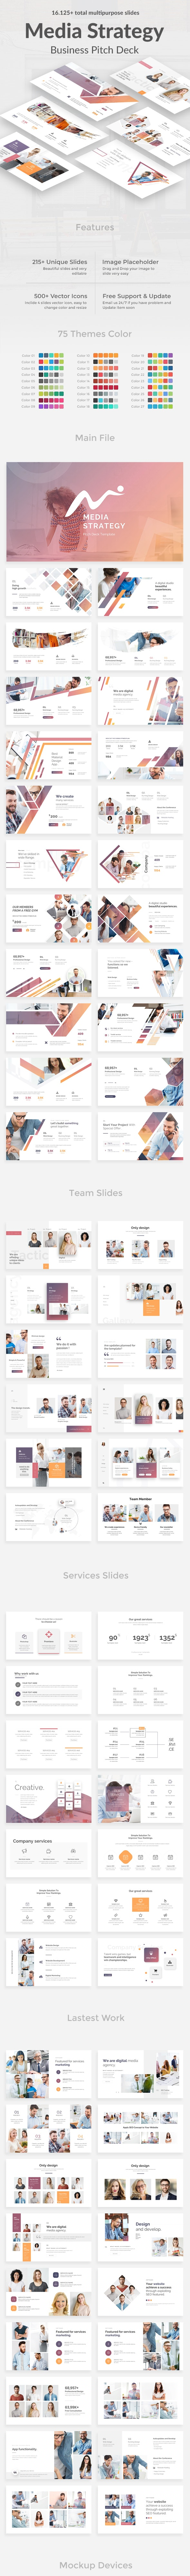 Media Strategy Pitch Deck Powerpoint Template - Business PowerPoint Templates